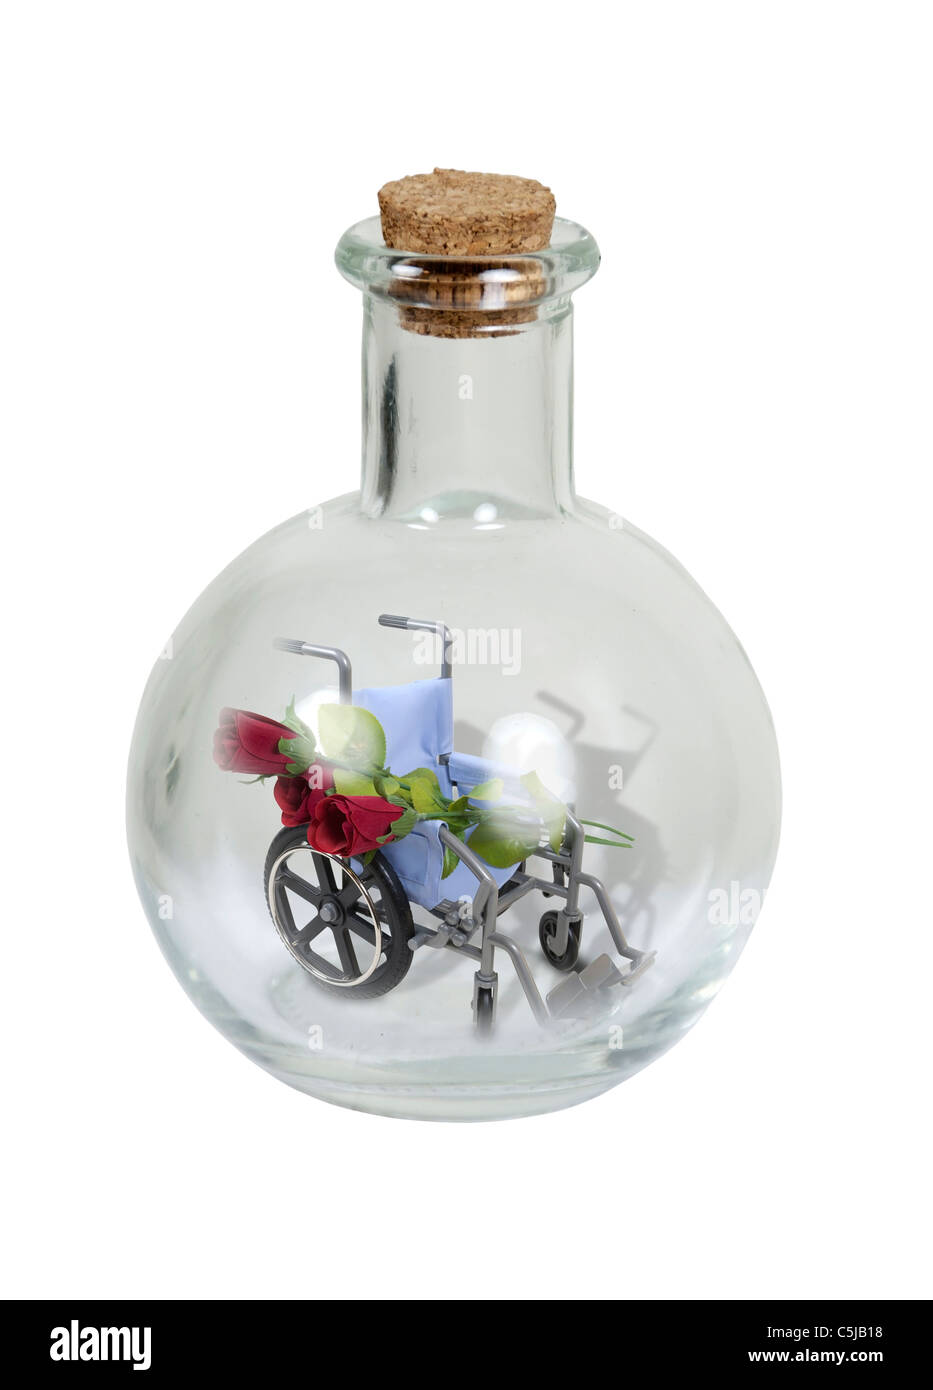 Elixir of health shown by a wheelchair with roses in a round glass bottle with cork stopper- path included - Stock Image